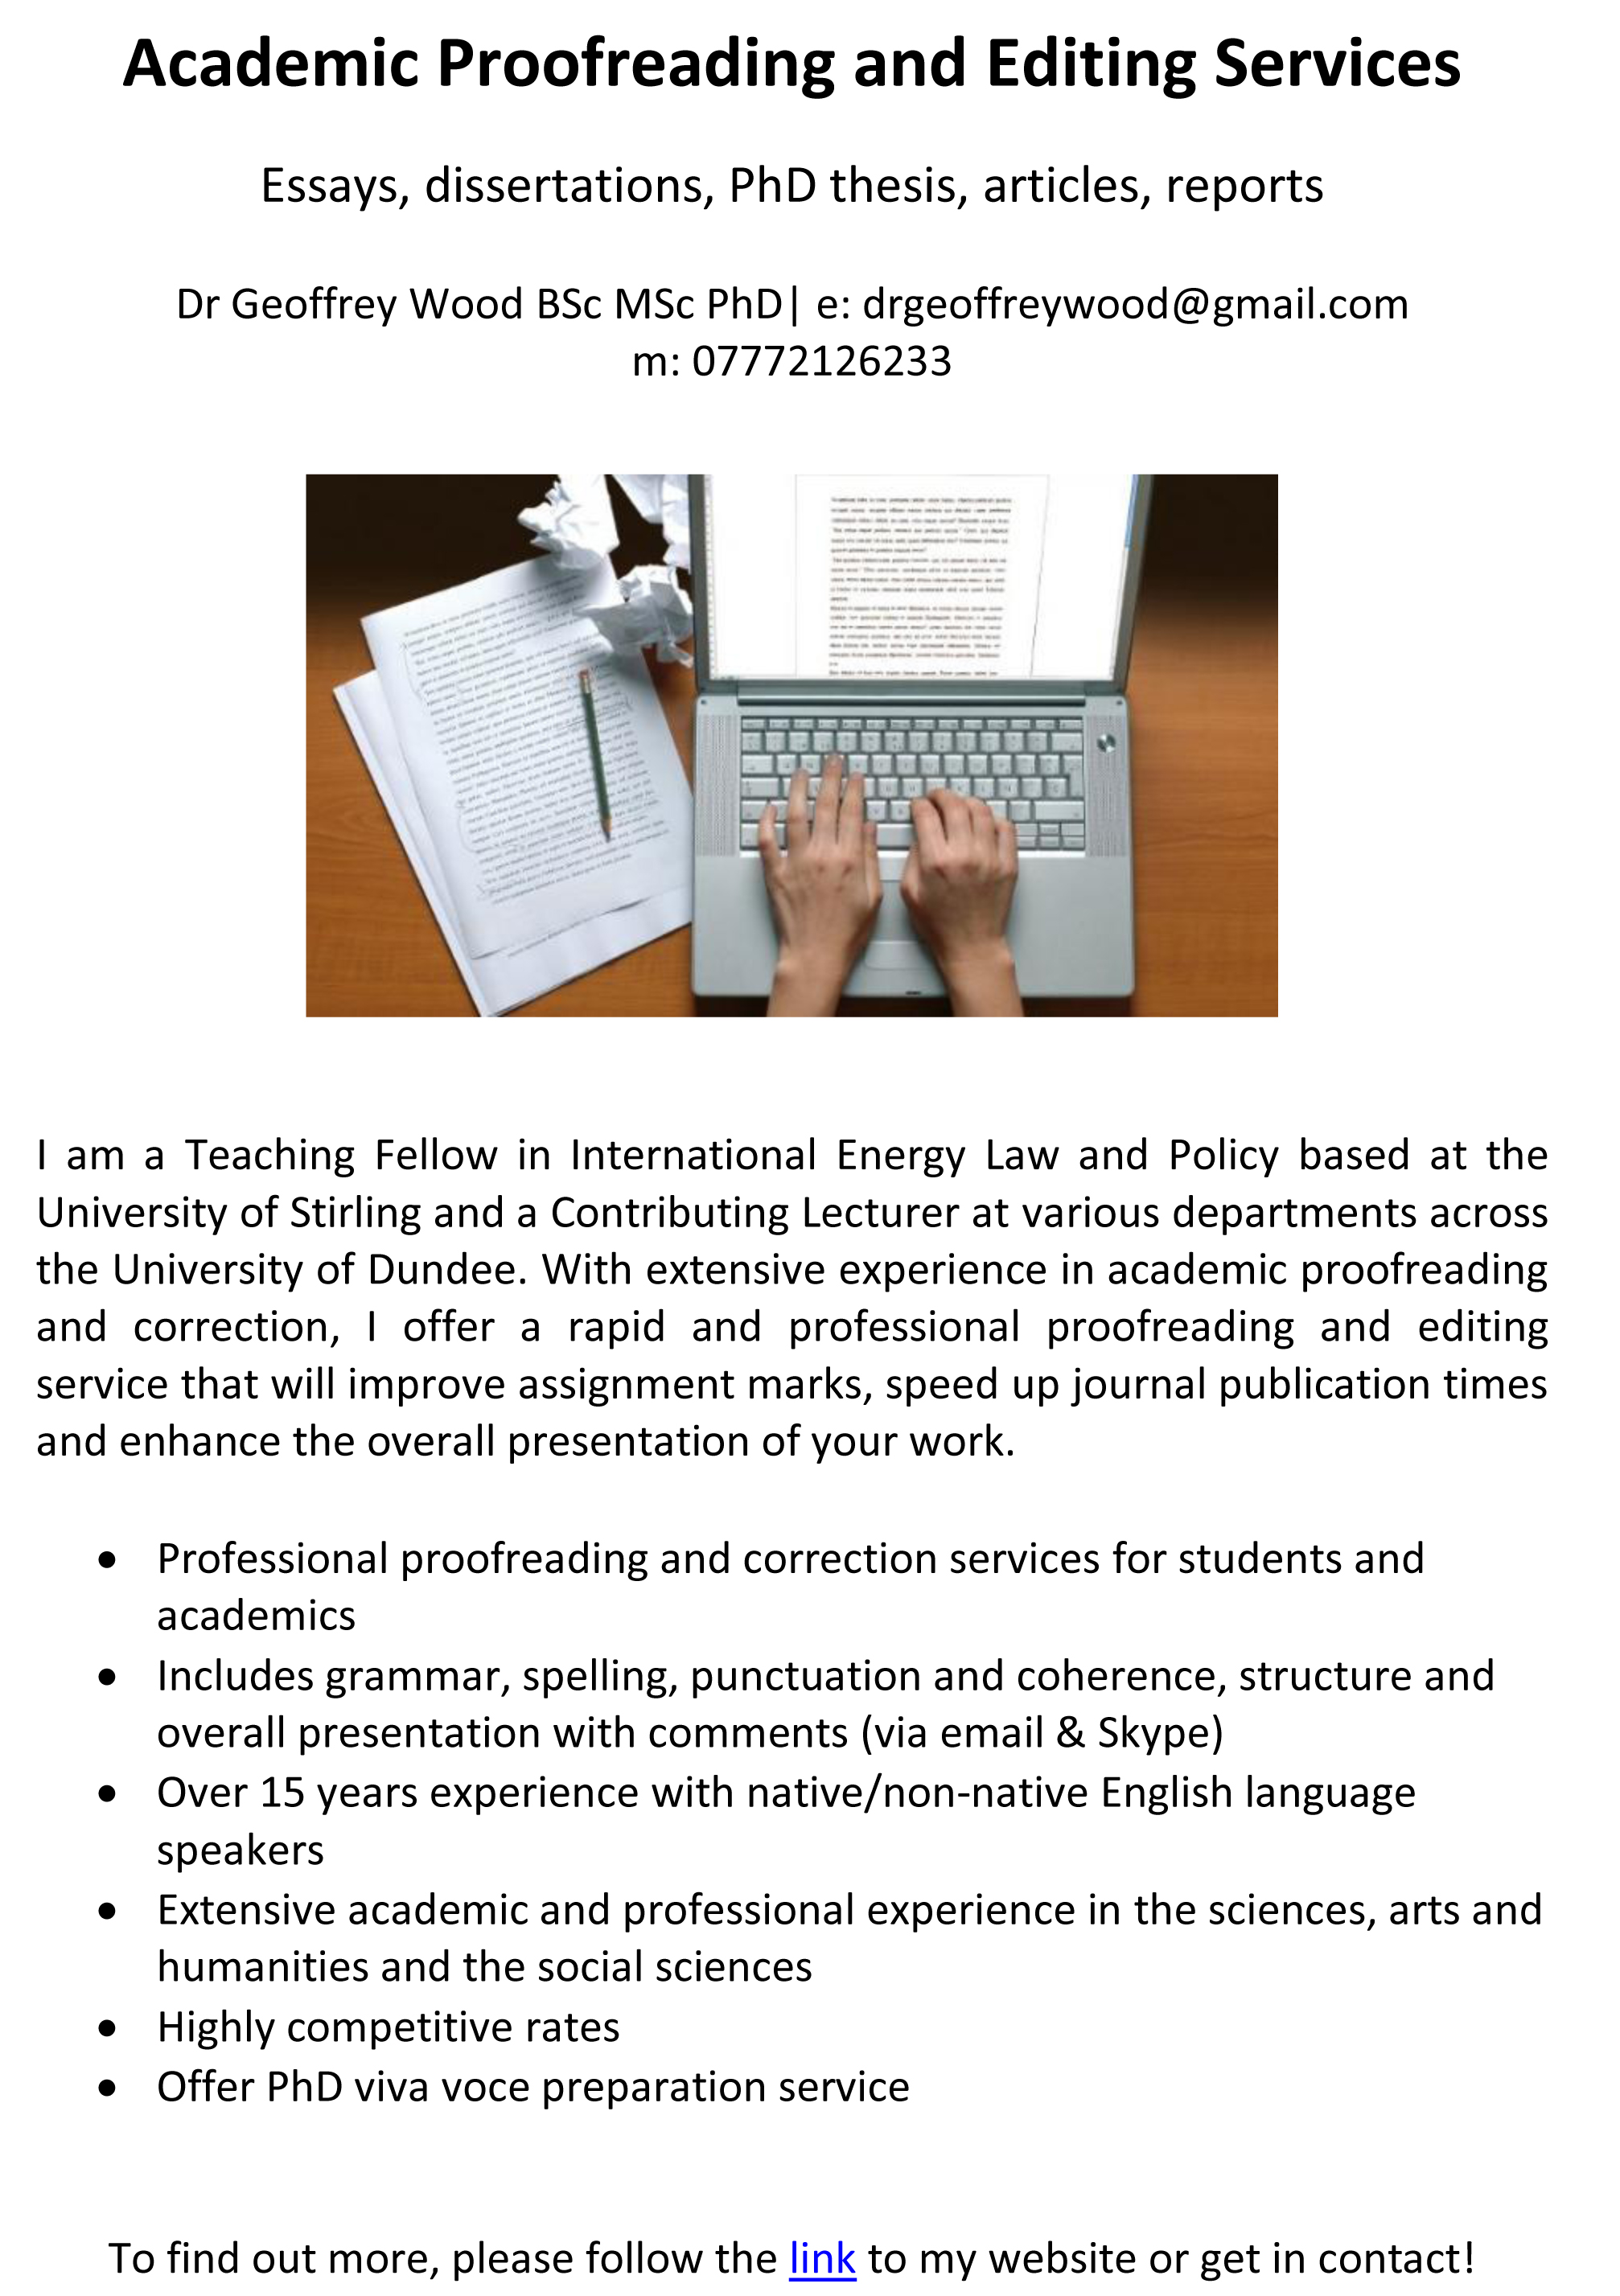 phd thesis proofreading service We offer two levels of service: thesis editing thesis proofreading phd proofreading oxbridge editing is a trading name of mrj corporation ltd.